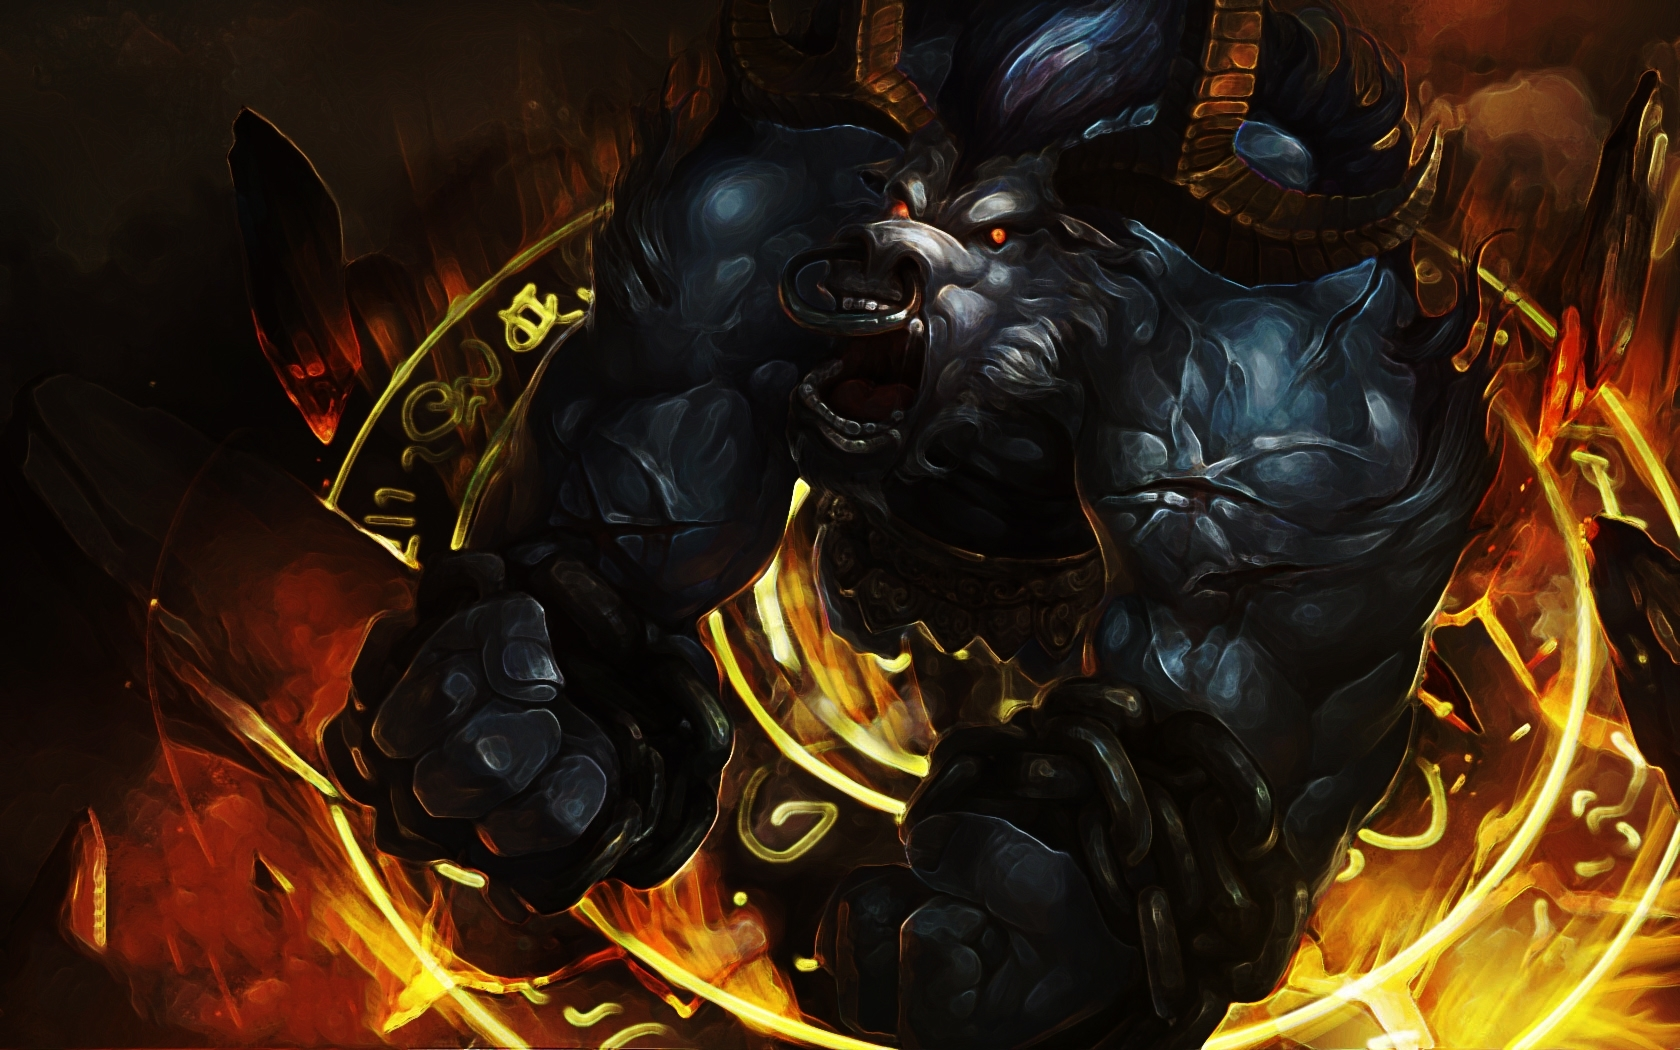 Minotaurus Minotaur League of HD Wallpaper